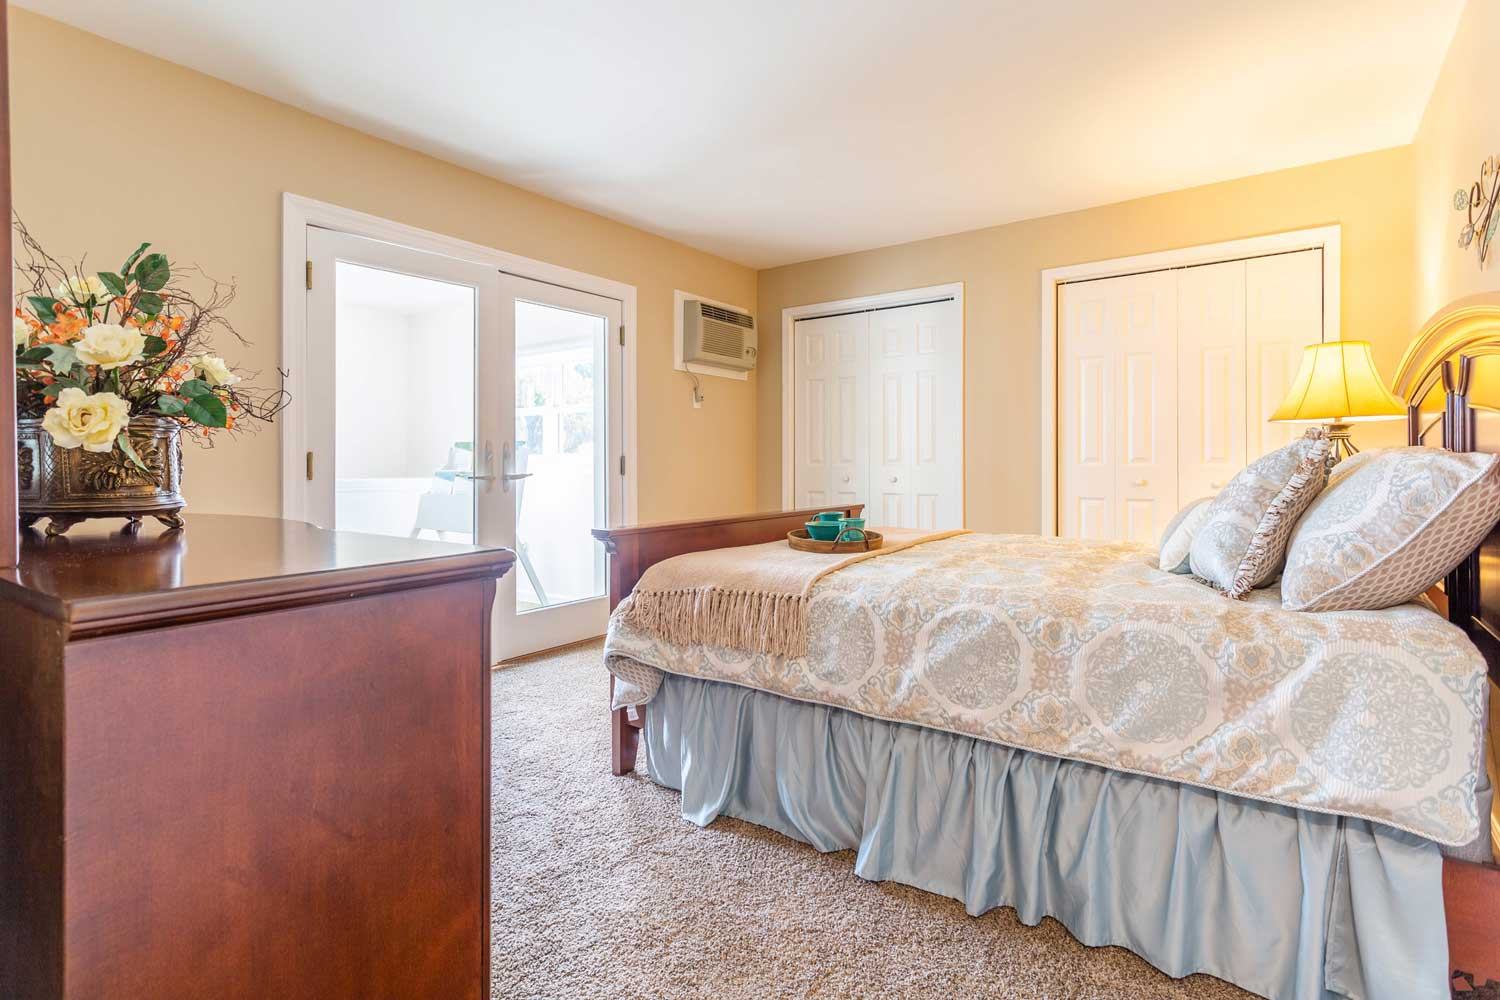 Apartments for Rent at Mountainview Gardens Apartments in Fishkill, NY